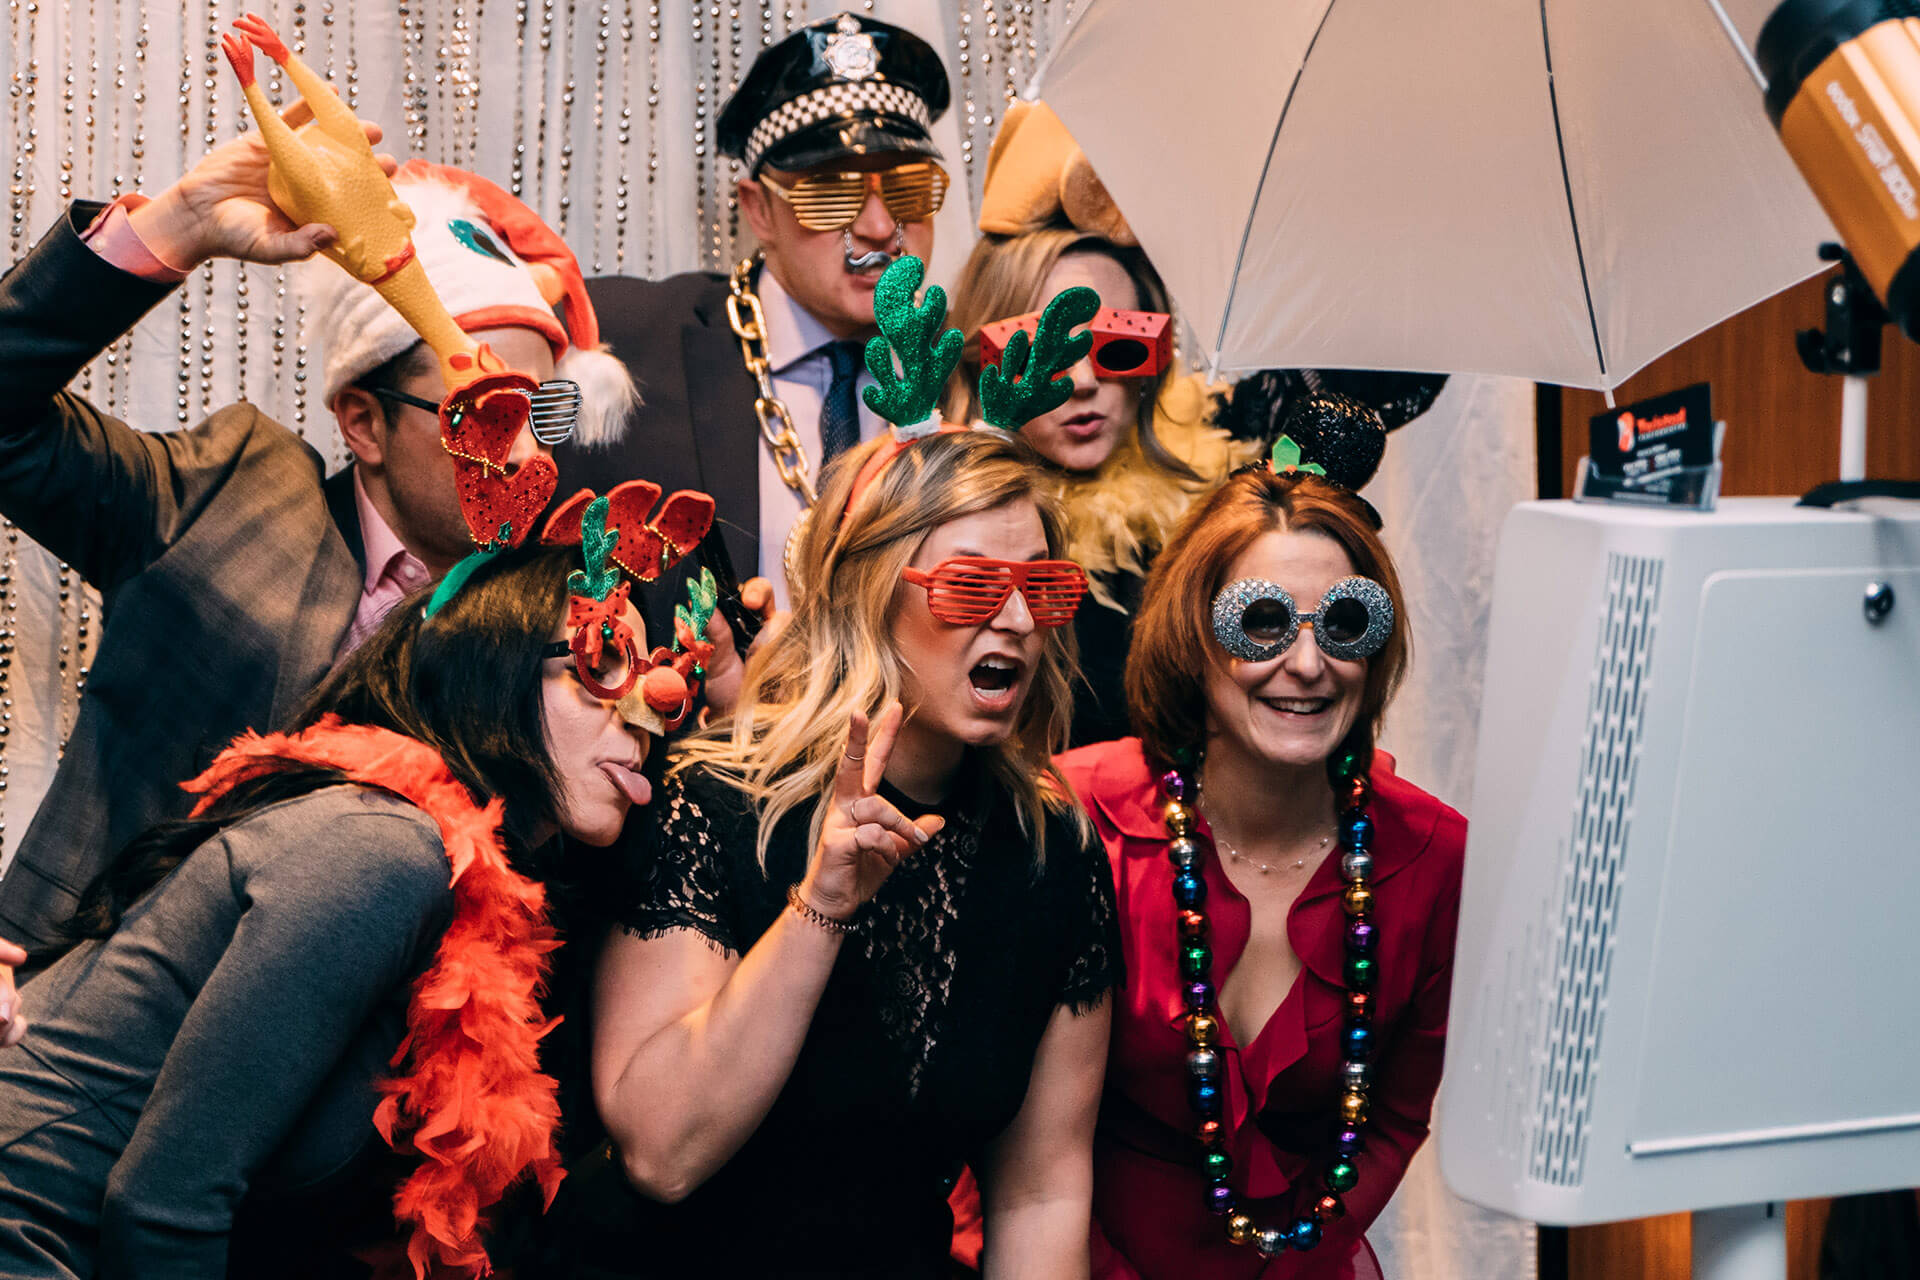 Twisted photo booth event in Calgary